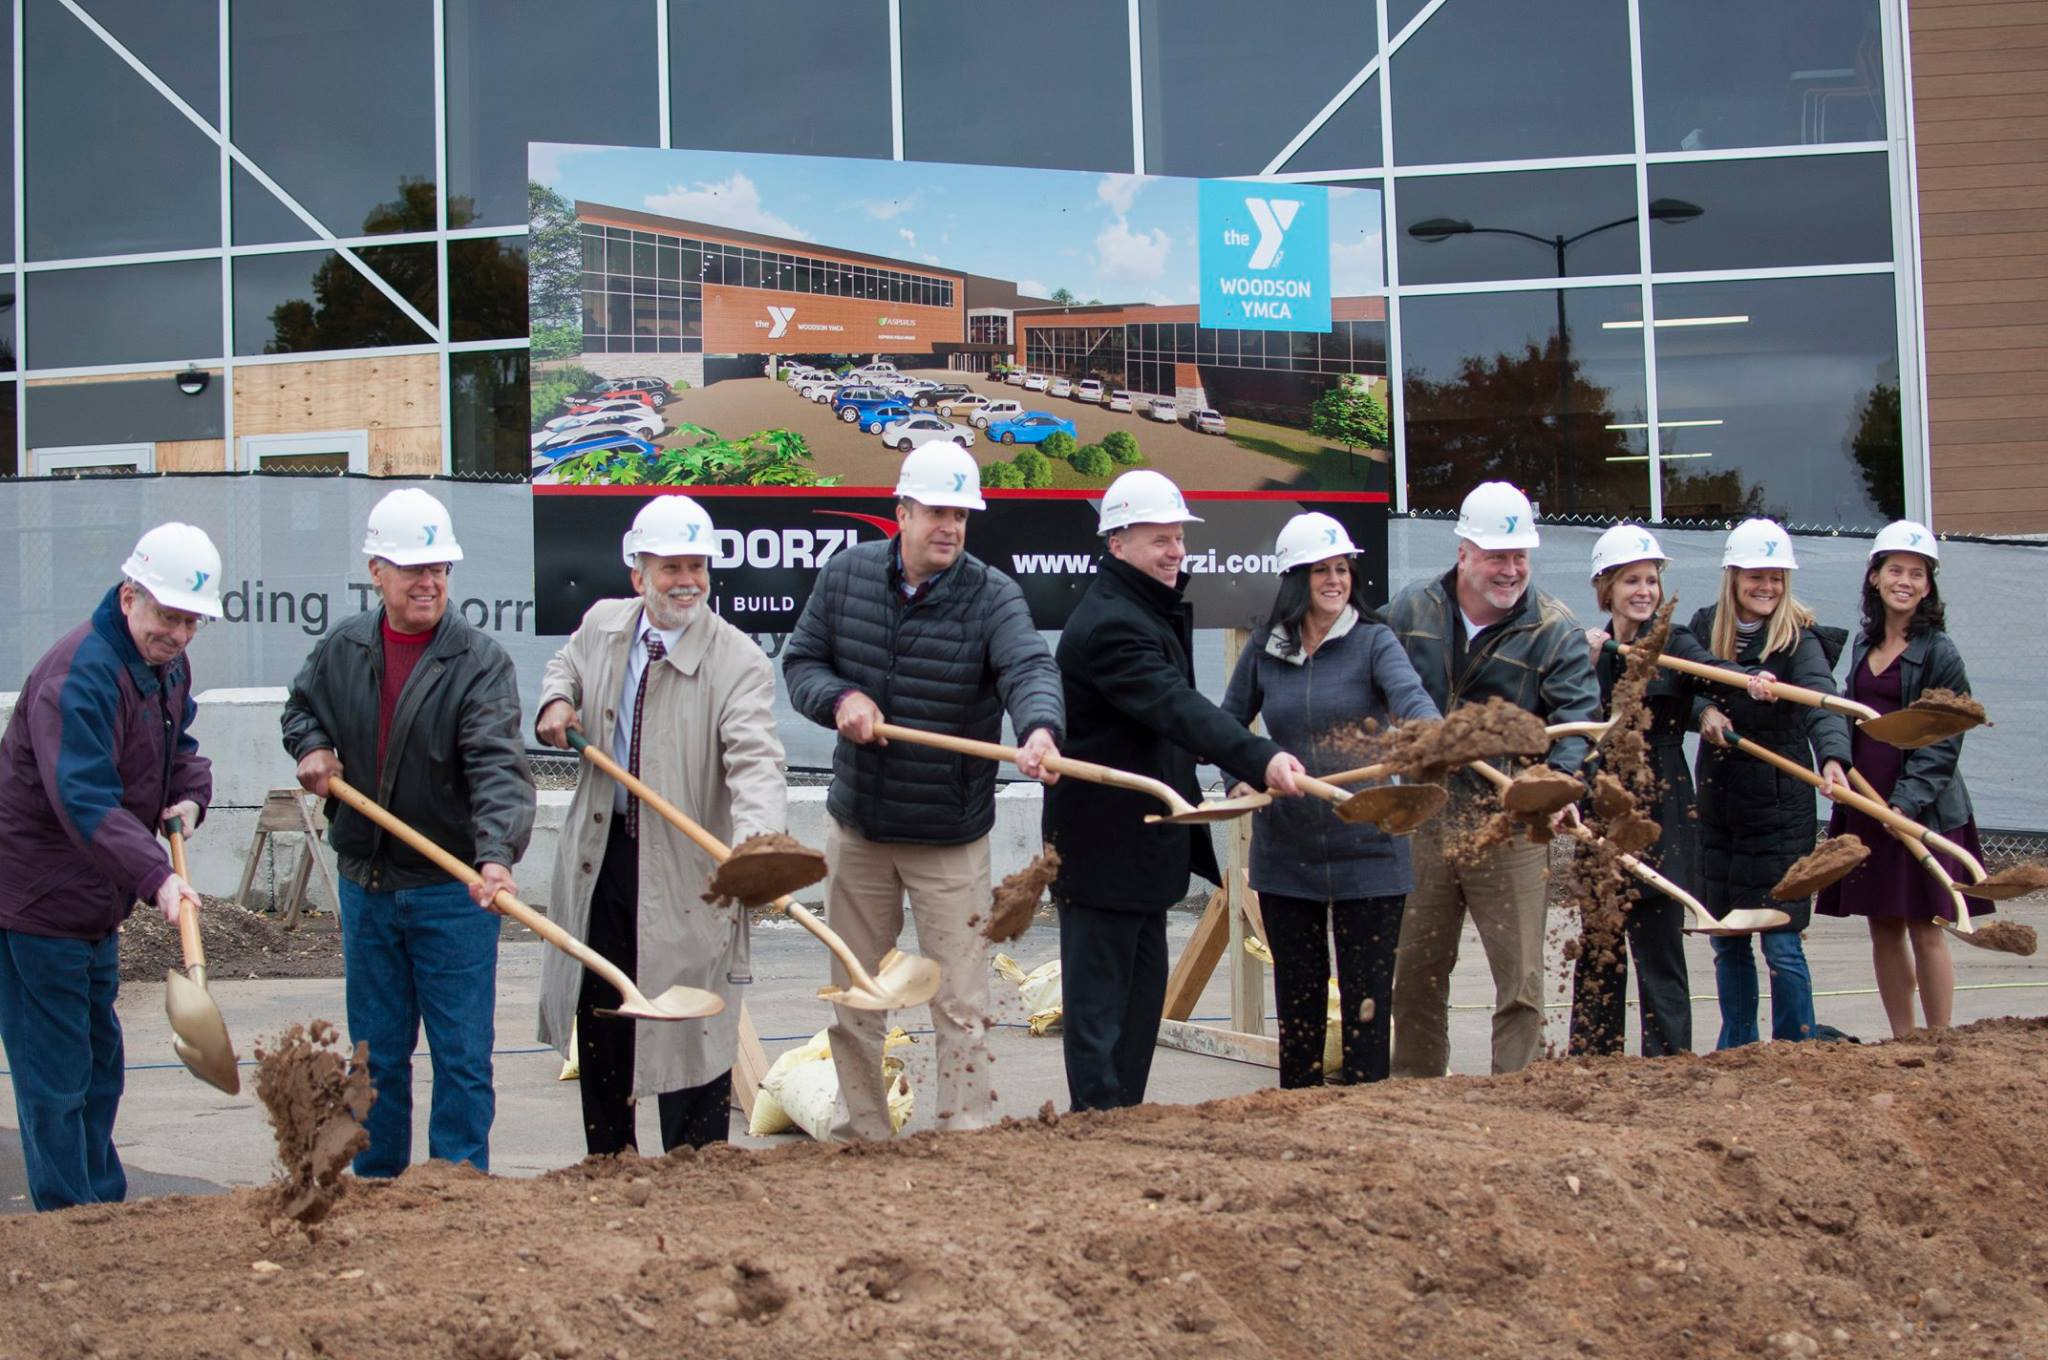 Community leaders break ground at the Woodson YMCA's $21 million expansion